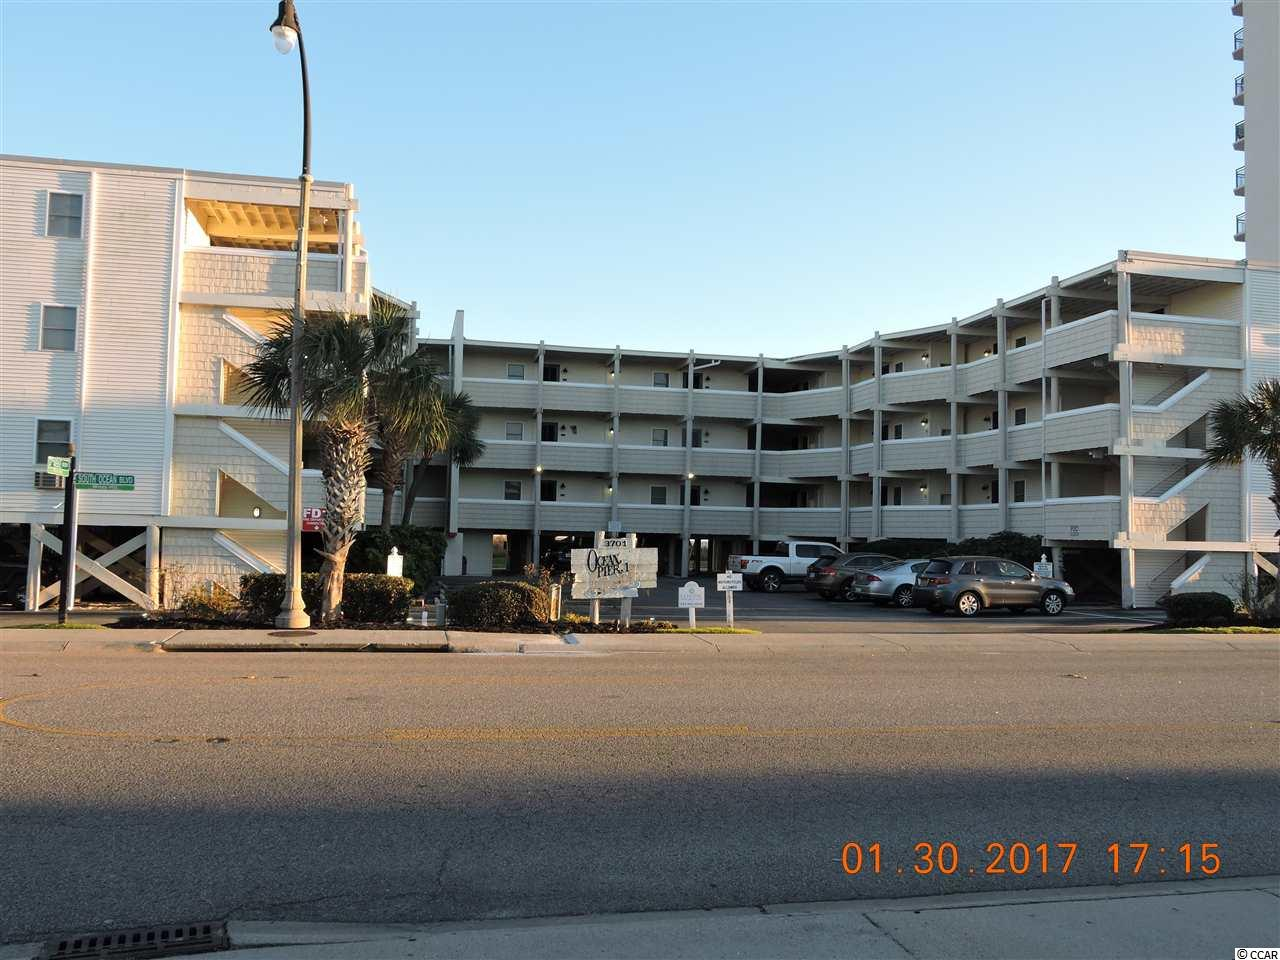 Condo / Townhome / Villa for Sale at 3701 S Ocean Blvd 3701 S Ocean Blvd North Myrtle Beach, South Carolina 29582 United States